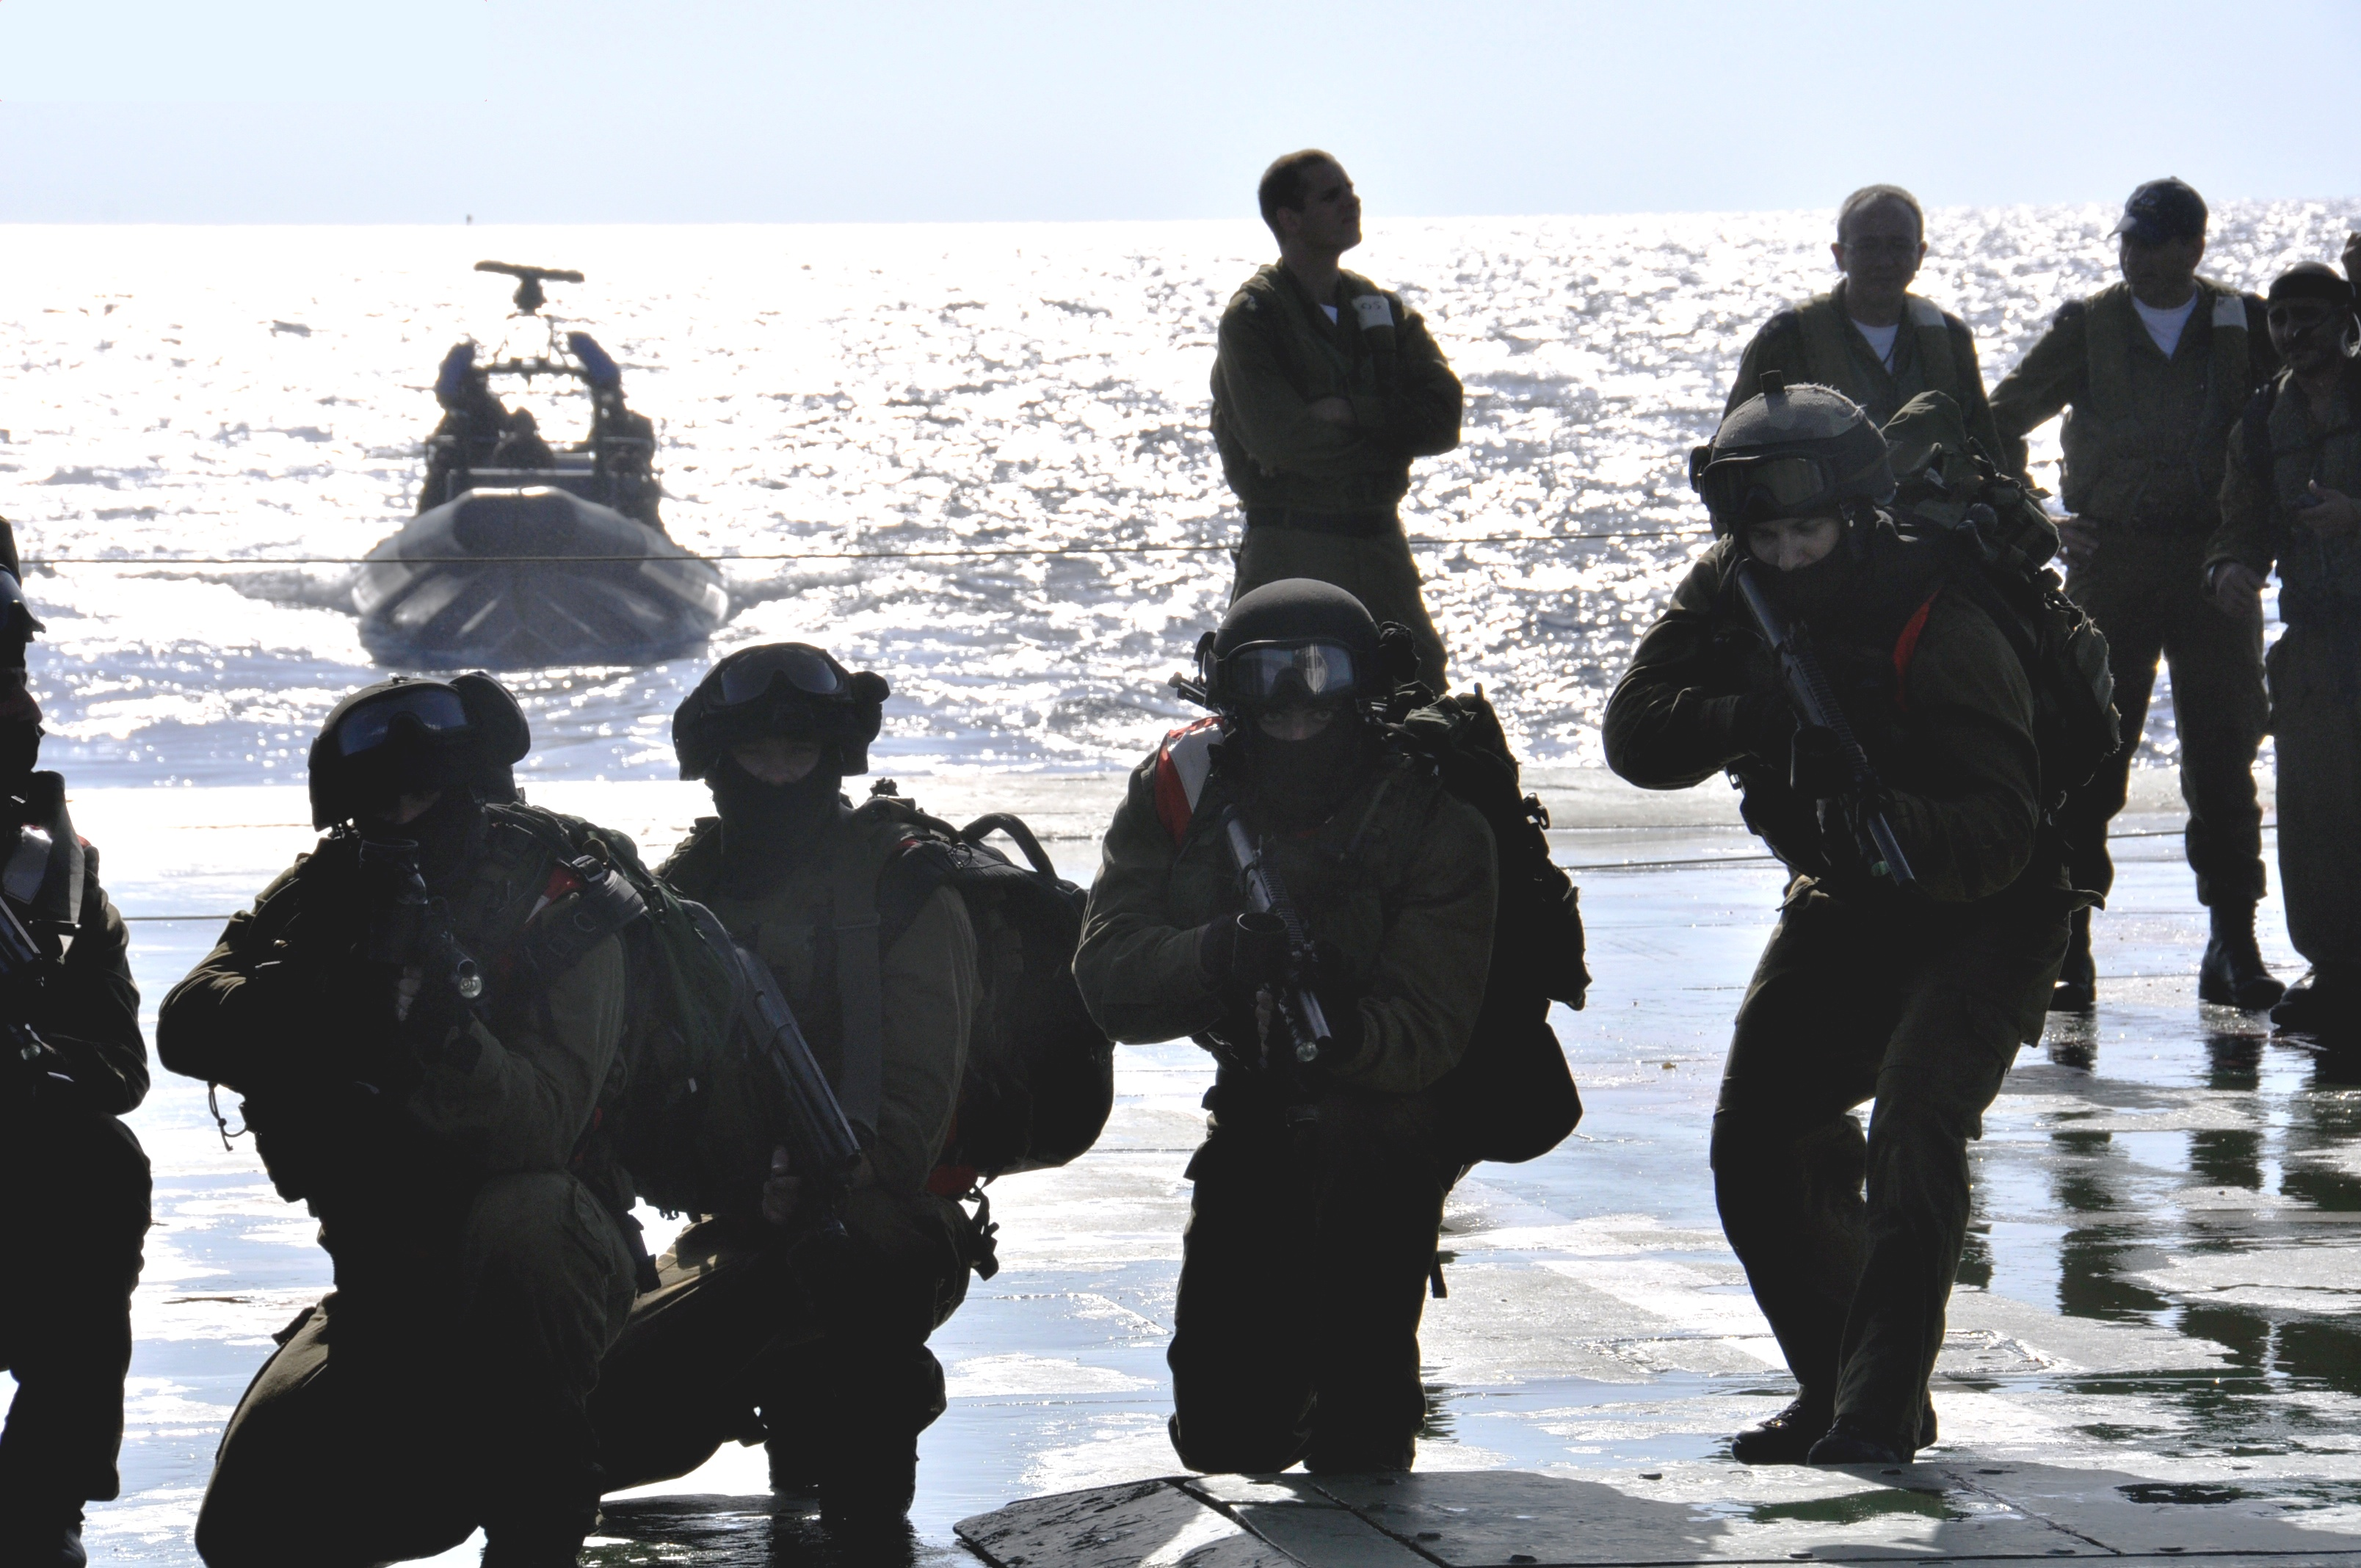 shayetet the elite naval commando unit  as the marine commando force, is of the elite special forces unit of the  a  dedicated special-forces unit other than the navy's shayetet 13.